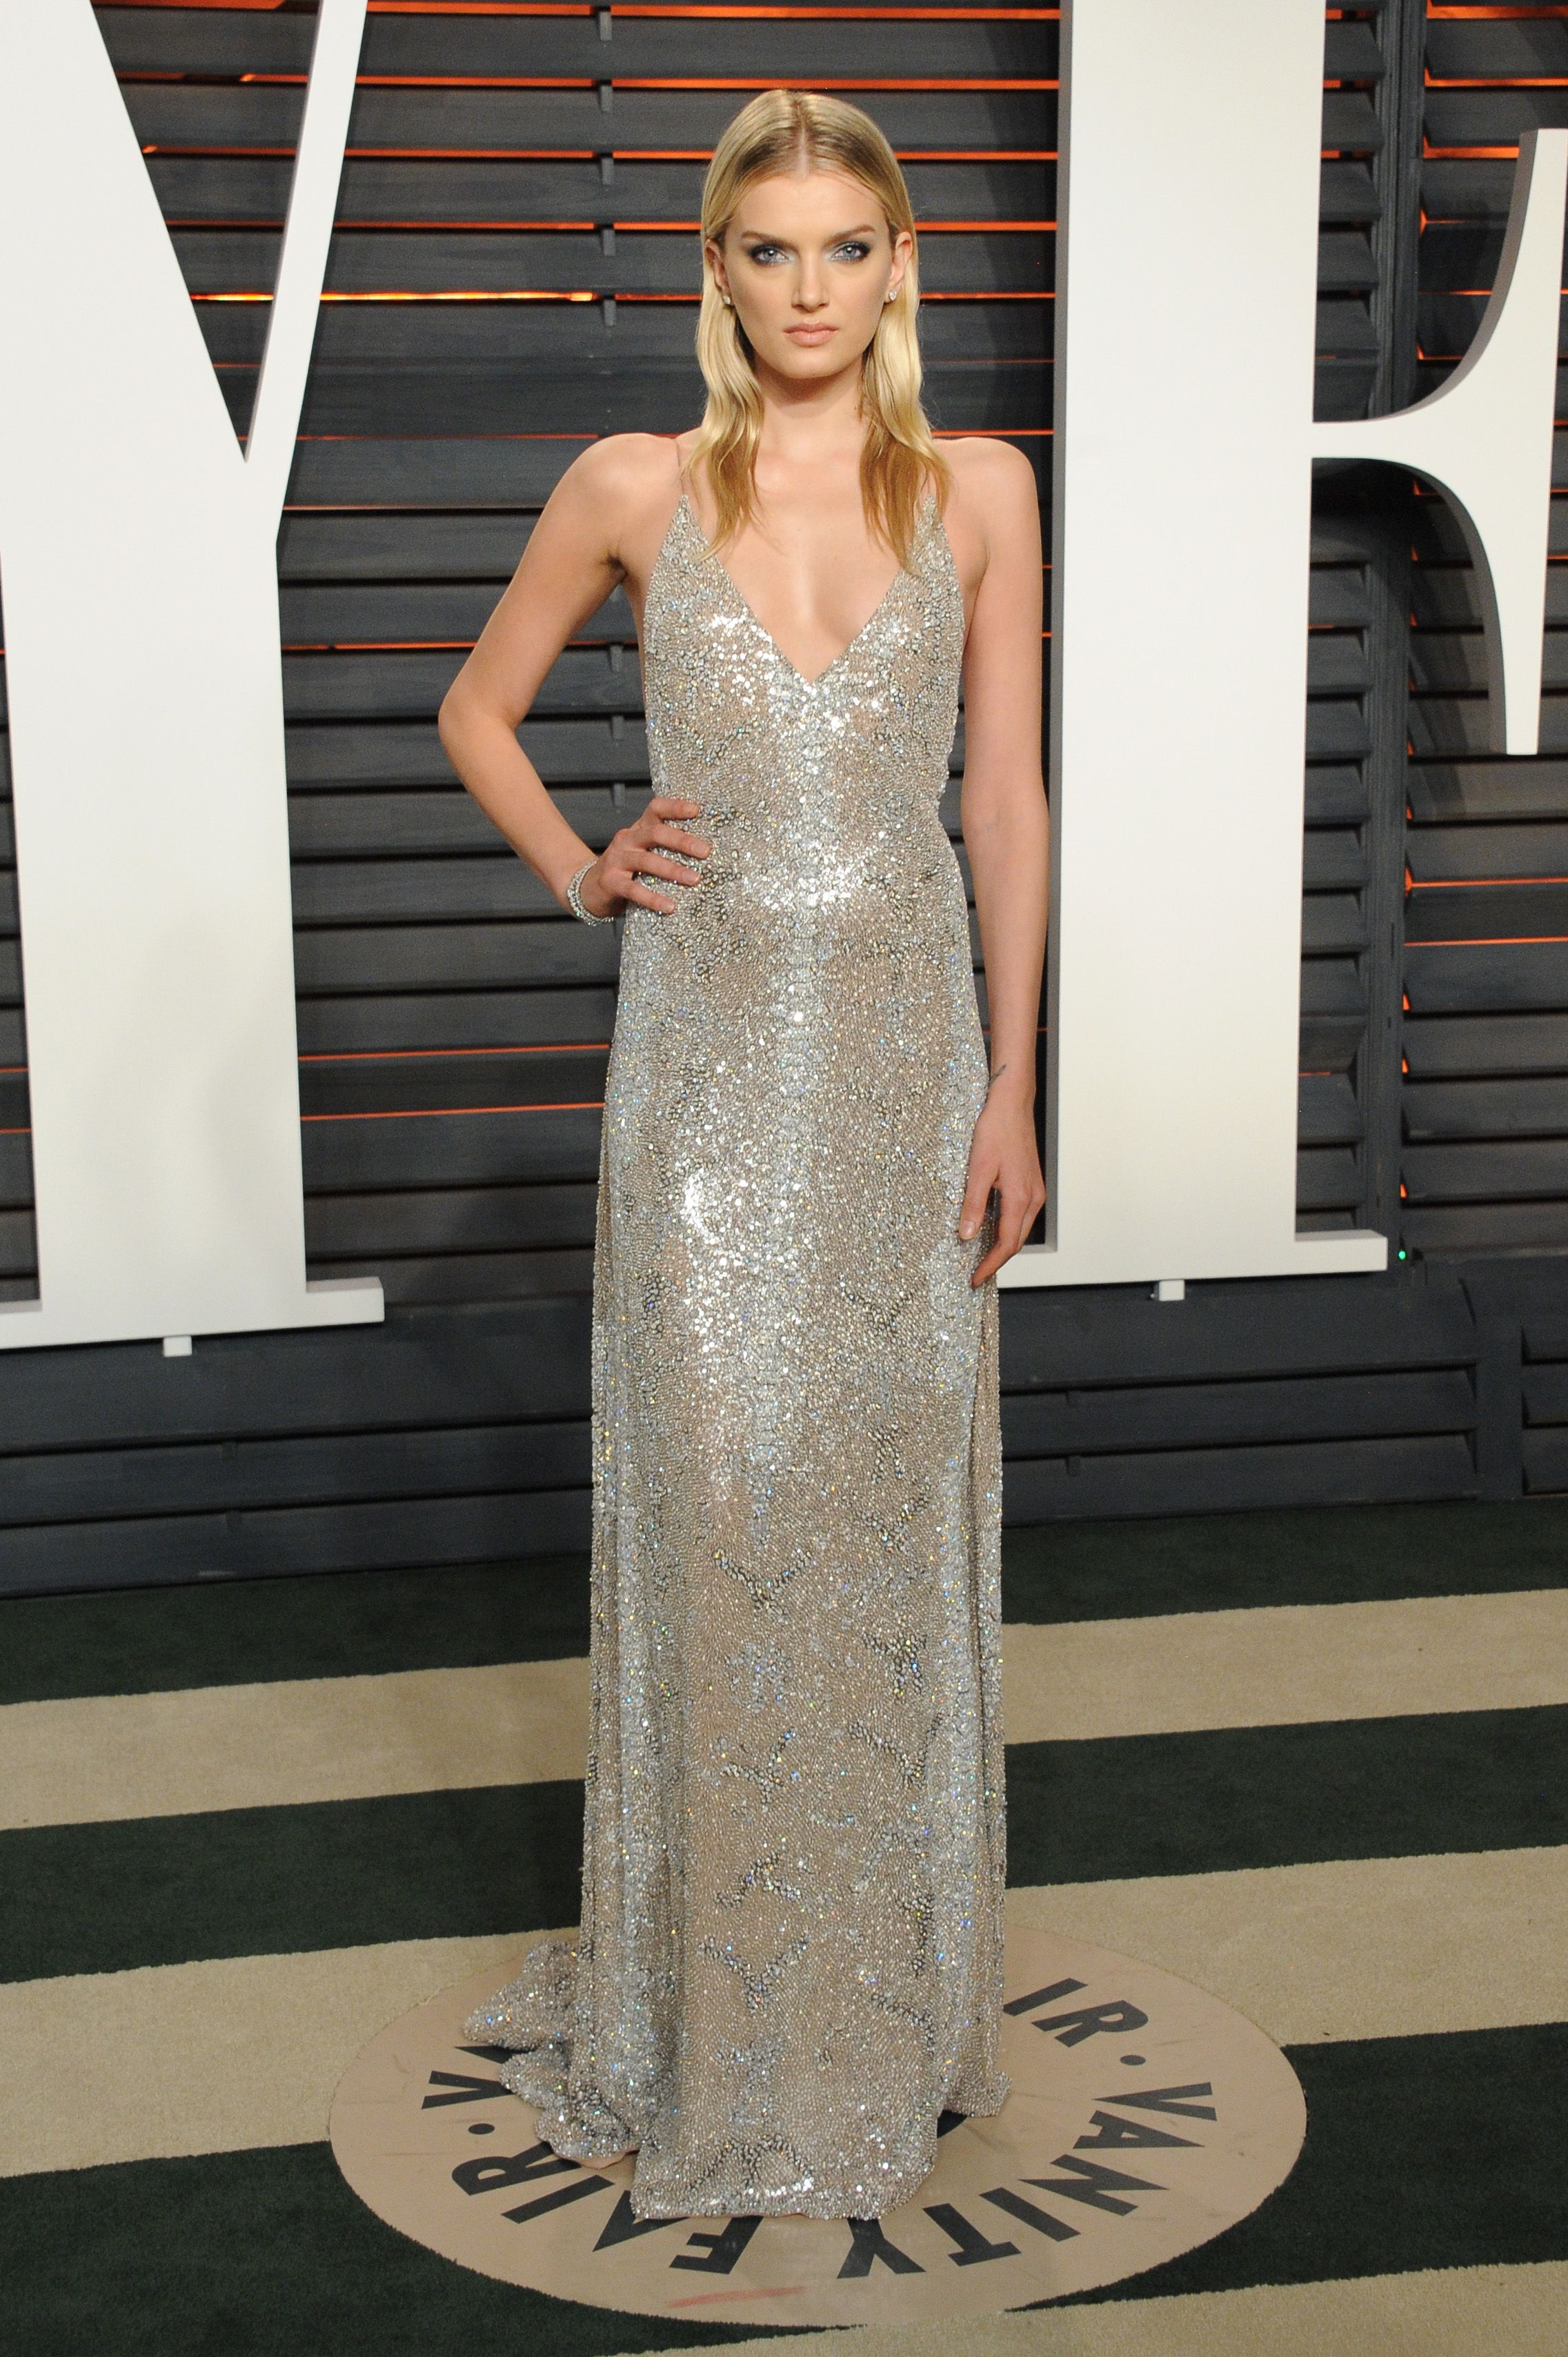 Model lily donaldson at the vanity fair oscars afterparty wearing